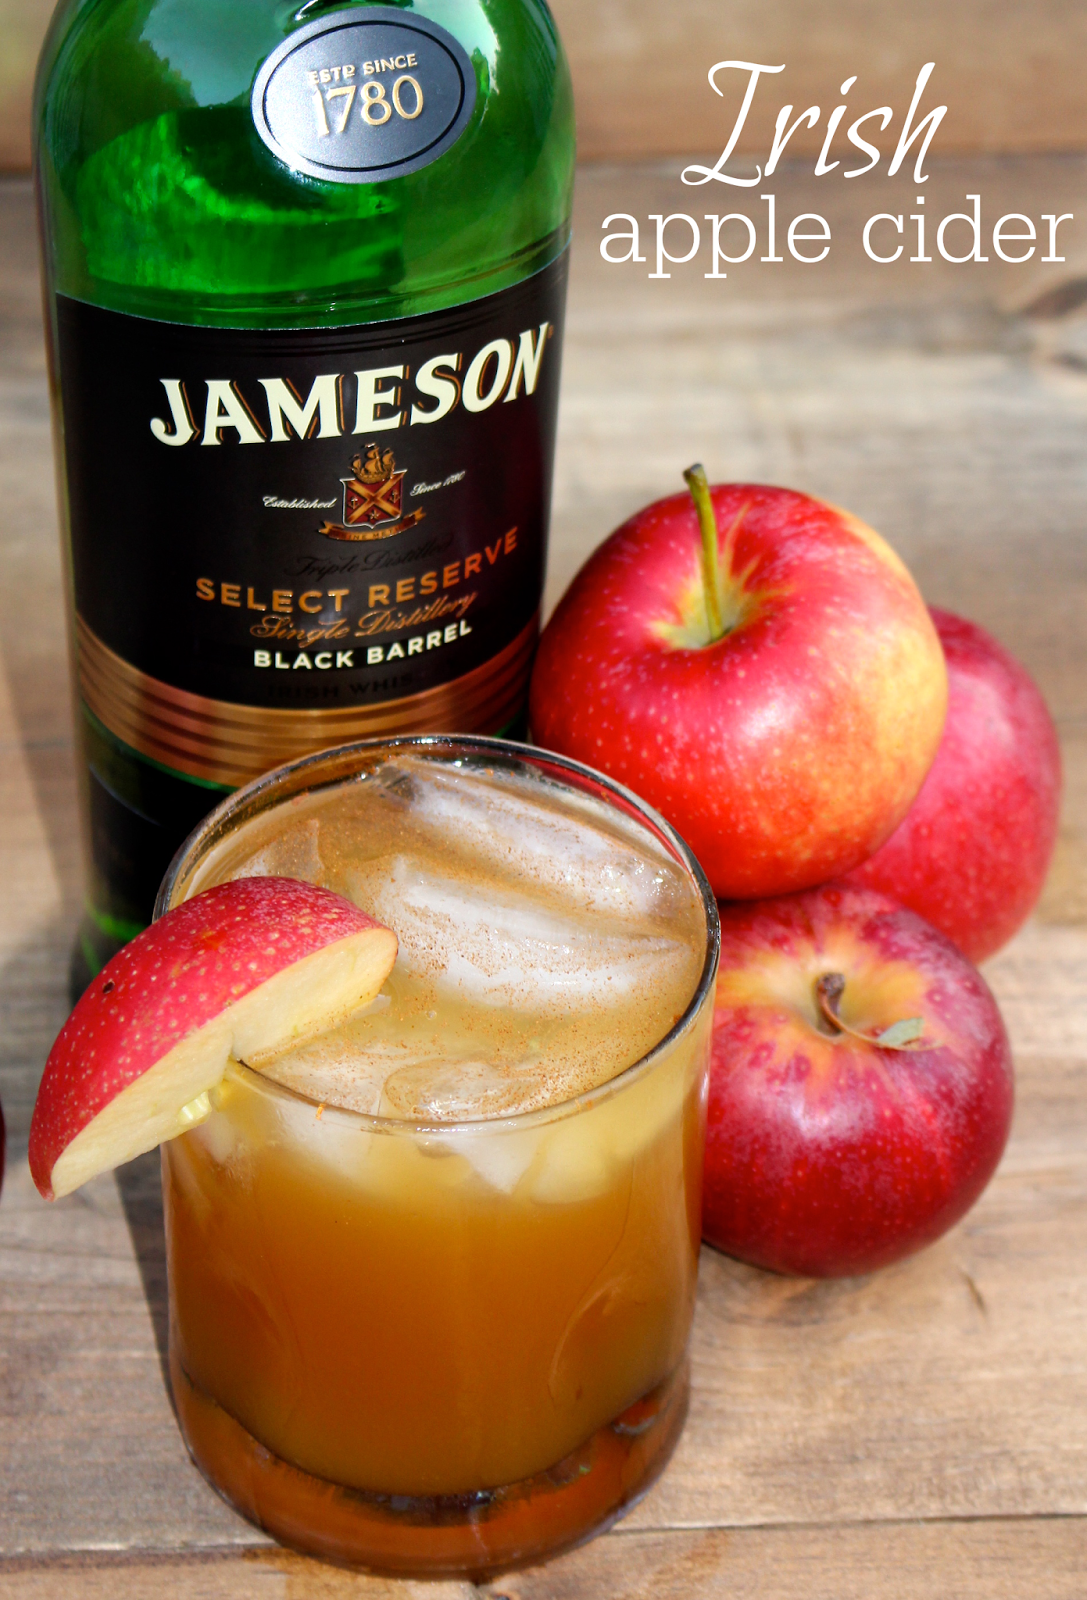 Irish apple cider jameson plus apple cider makes the for Mixed drink with jameson